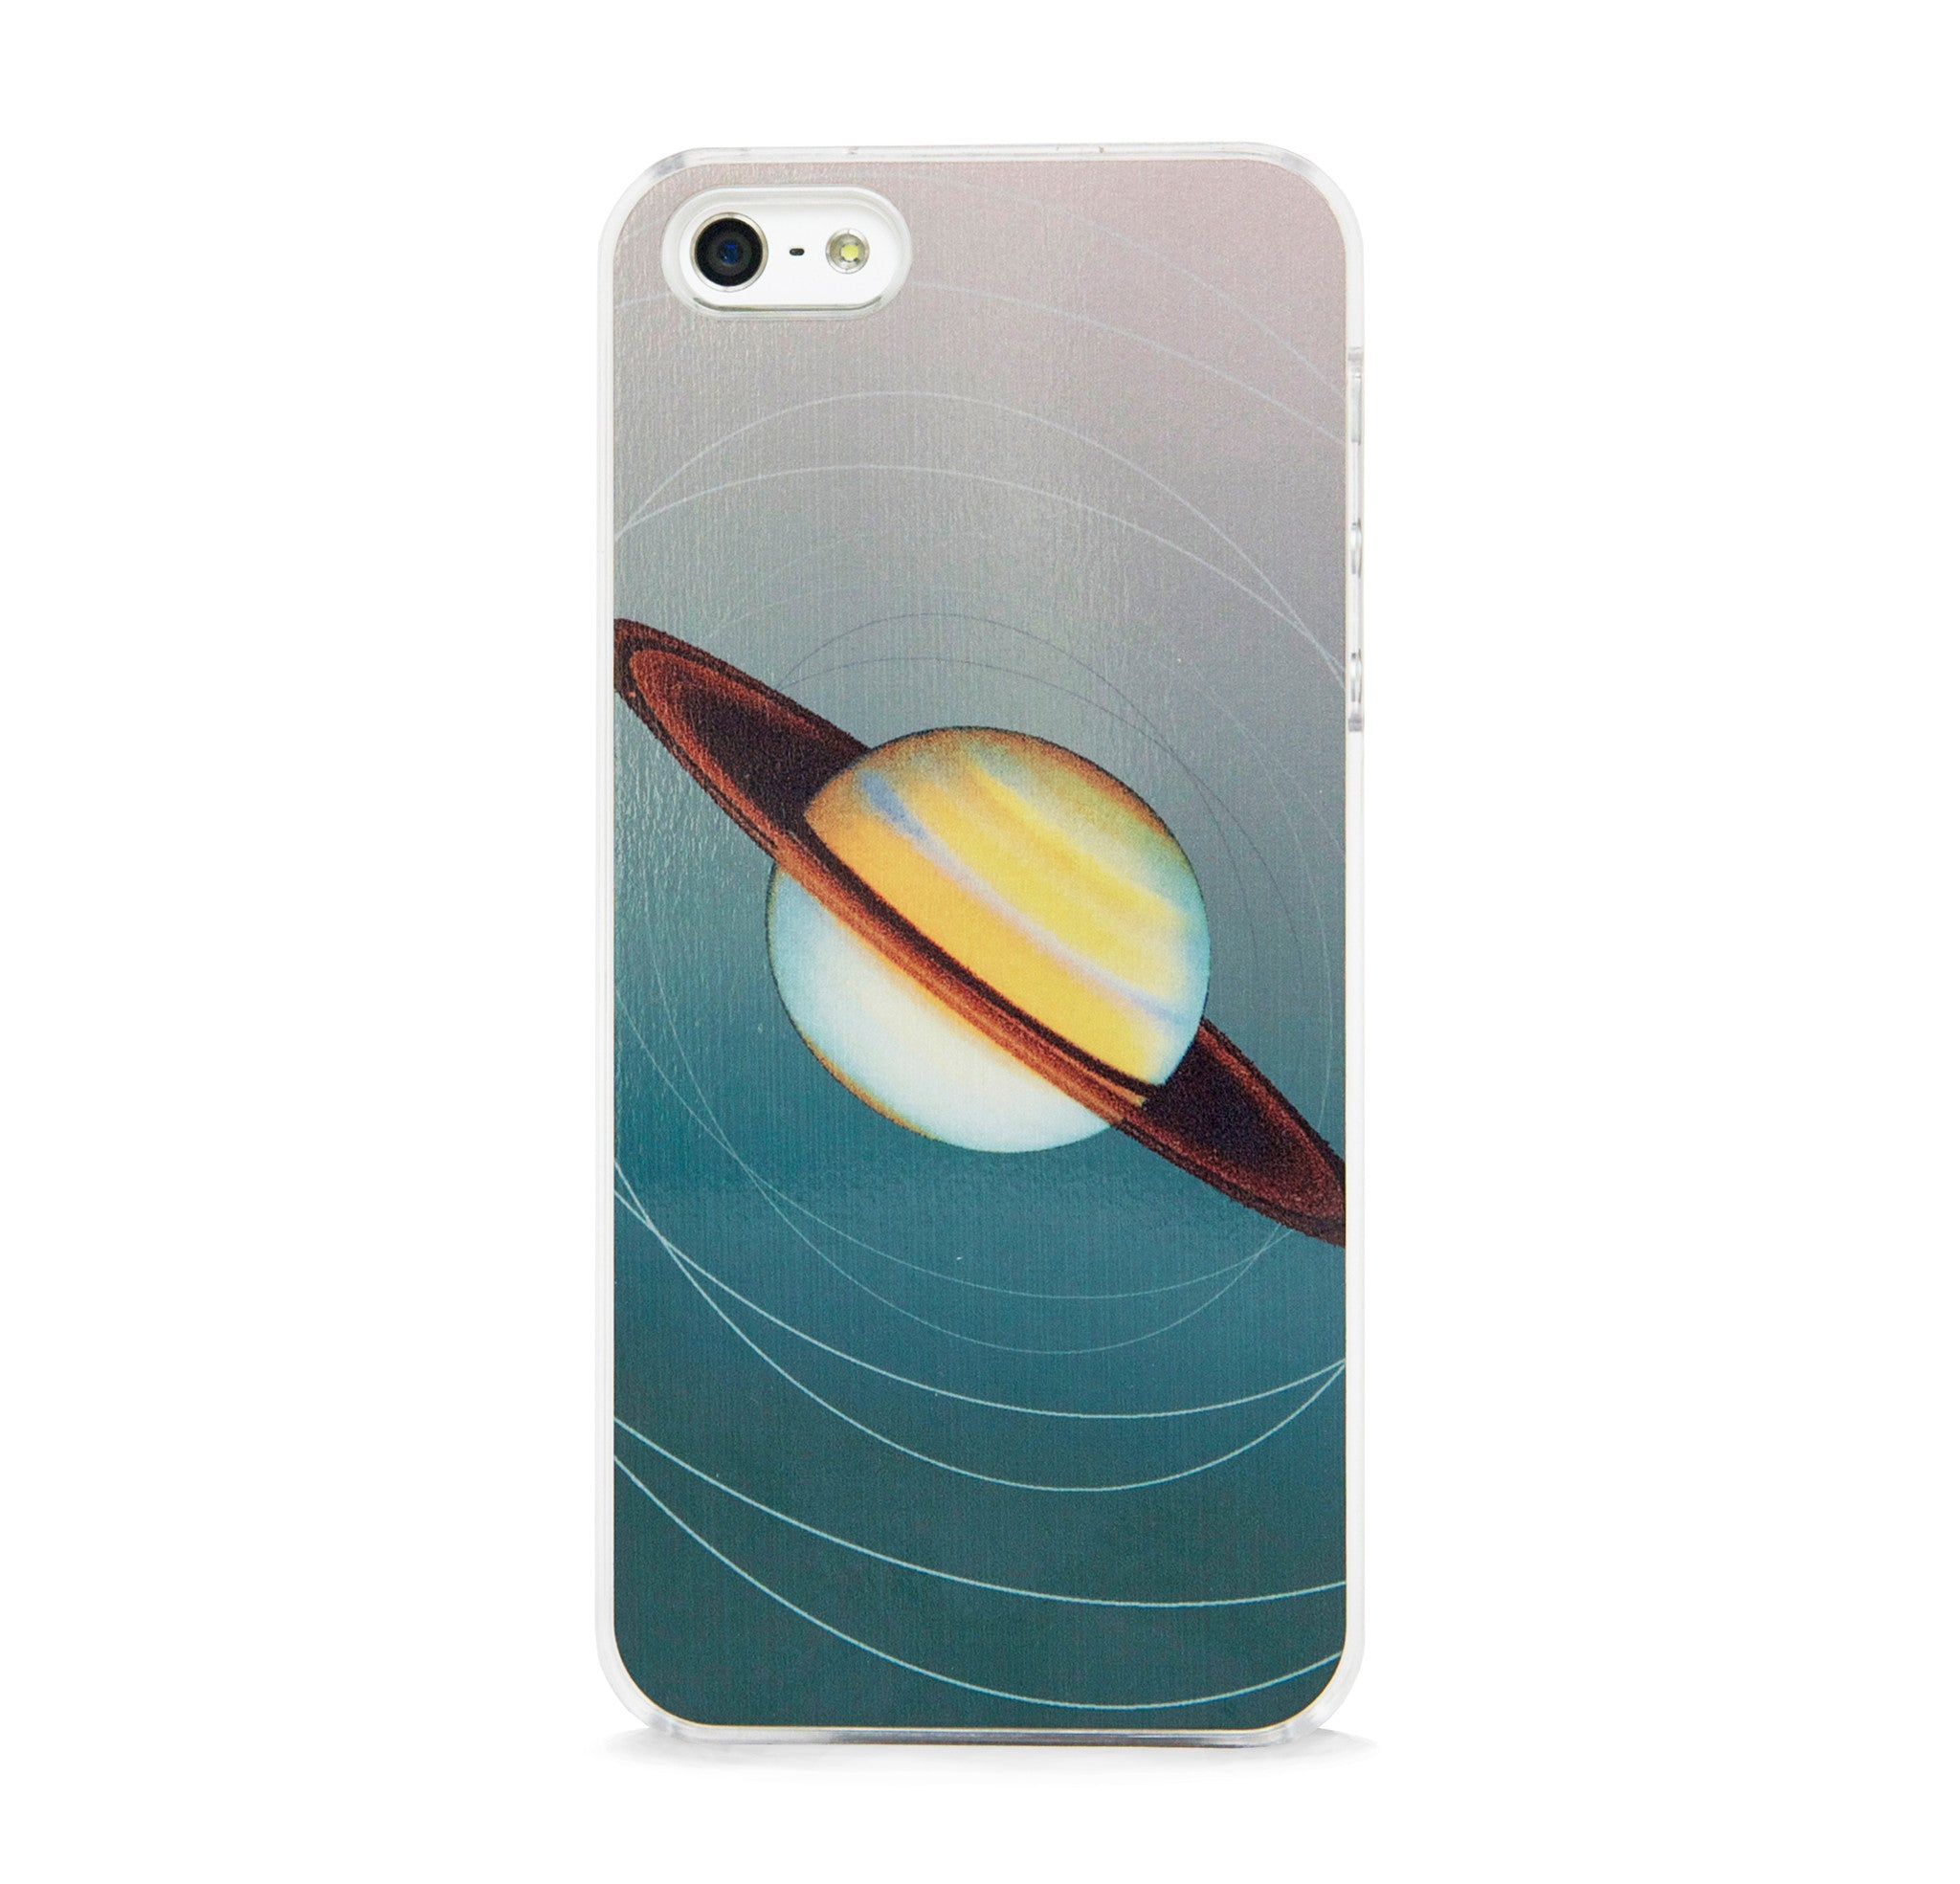 SPACE SATURN DK GREEN FOR IPHONE 5/5S